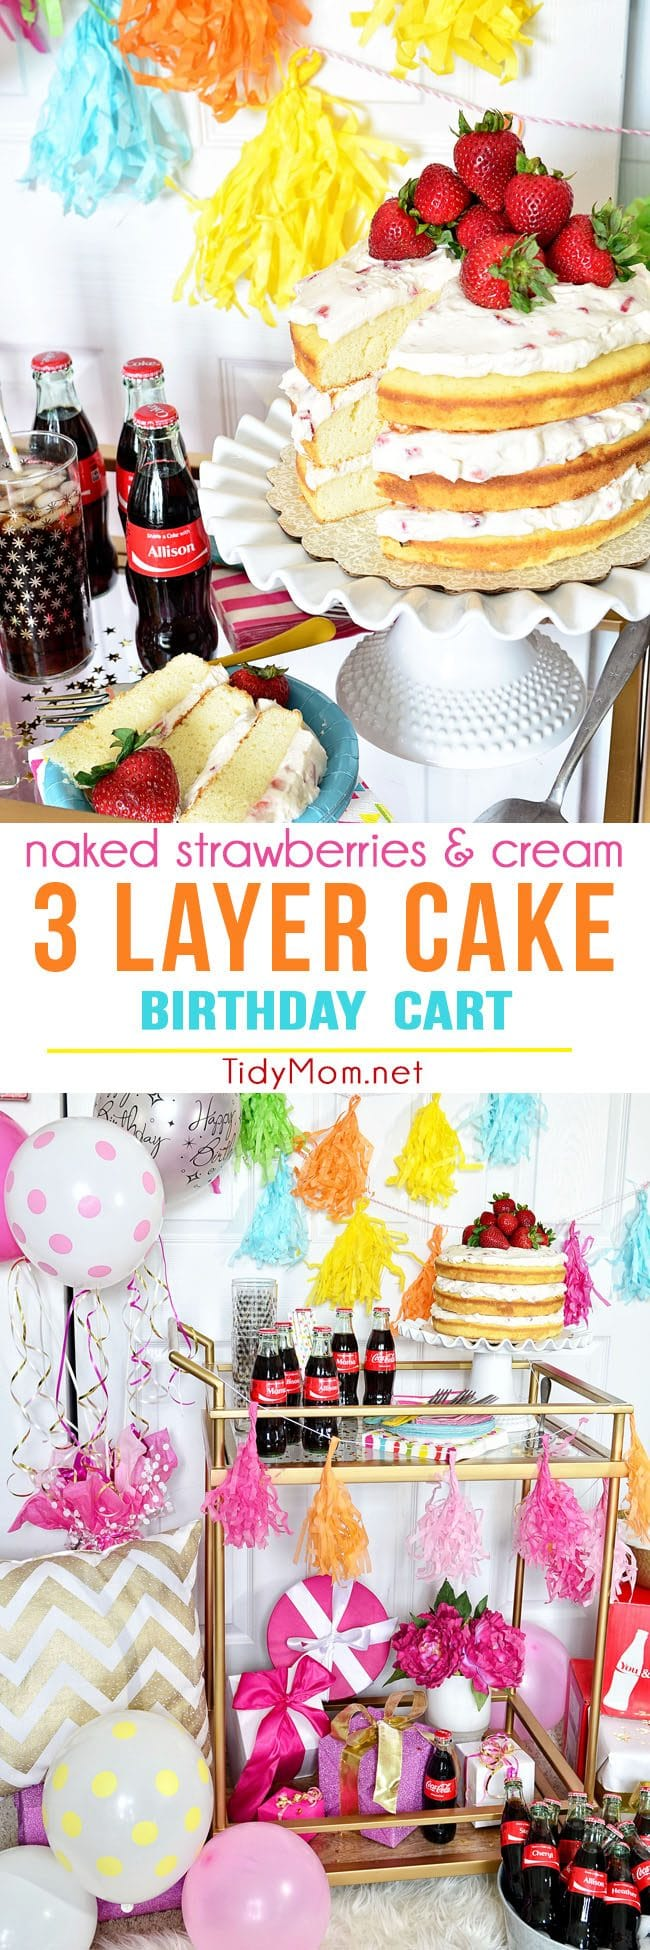 Fun Birthday Cart with a Naked Strawberries and Cream Cake! 3 delicious layers of homemade pound cake, with fresh strawberries and a dreamy vanilla whipped cream cream cheese frosting recipe and party details at TidyMom.net